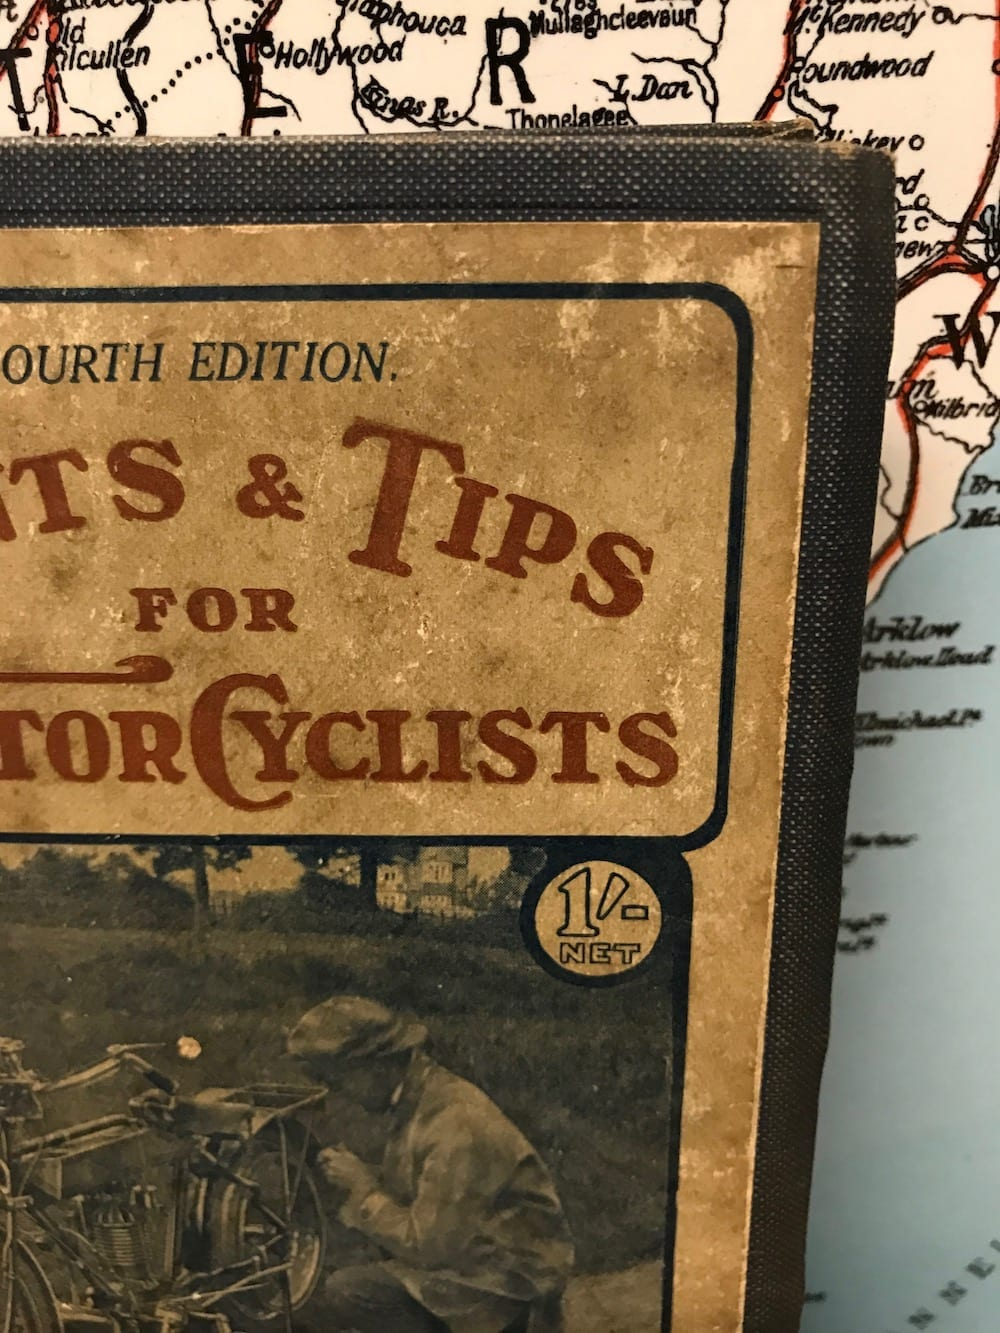 108 HINTS & TIPS FOR THE MOTOR CYCLISTS/ FOURTH EDITION. - Vintage Motoring UK